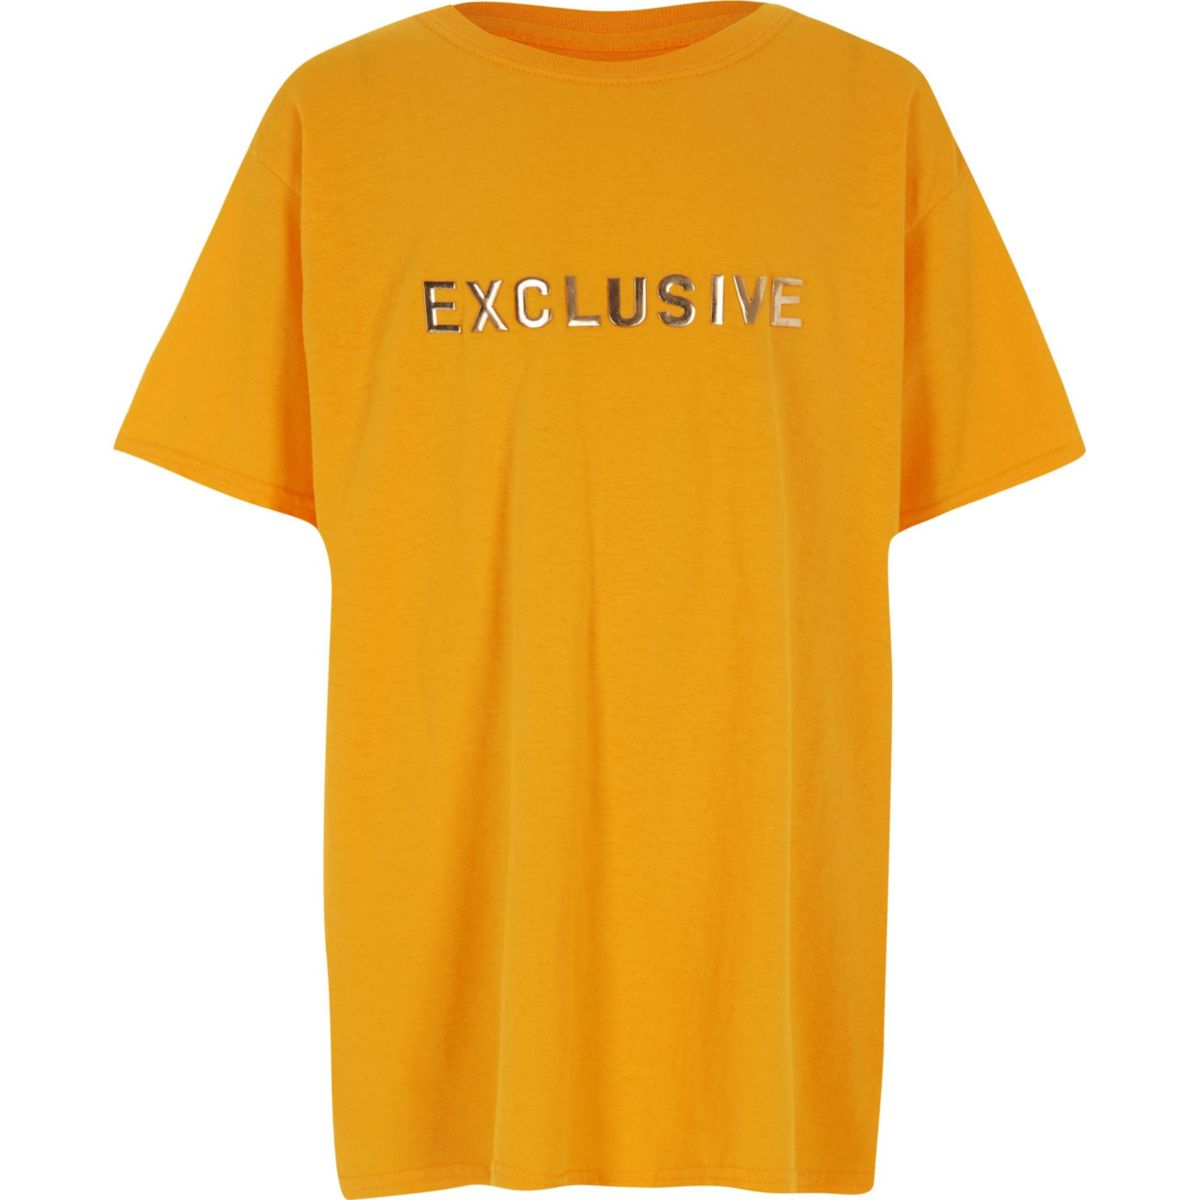 Top oversize à inscription « Exclusive » jaune garçon